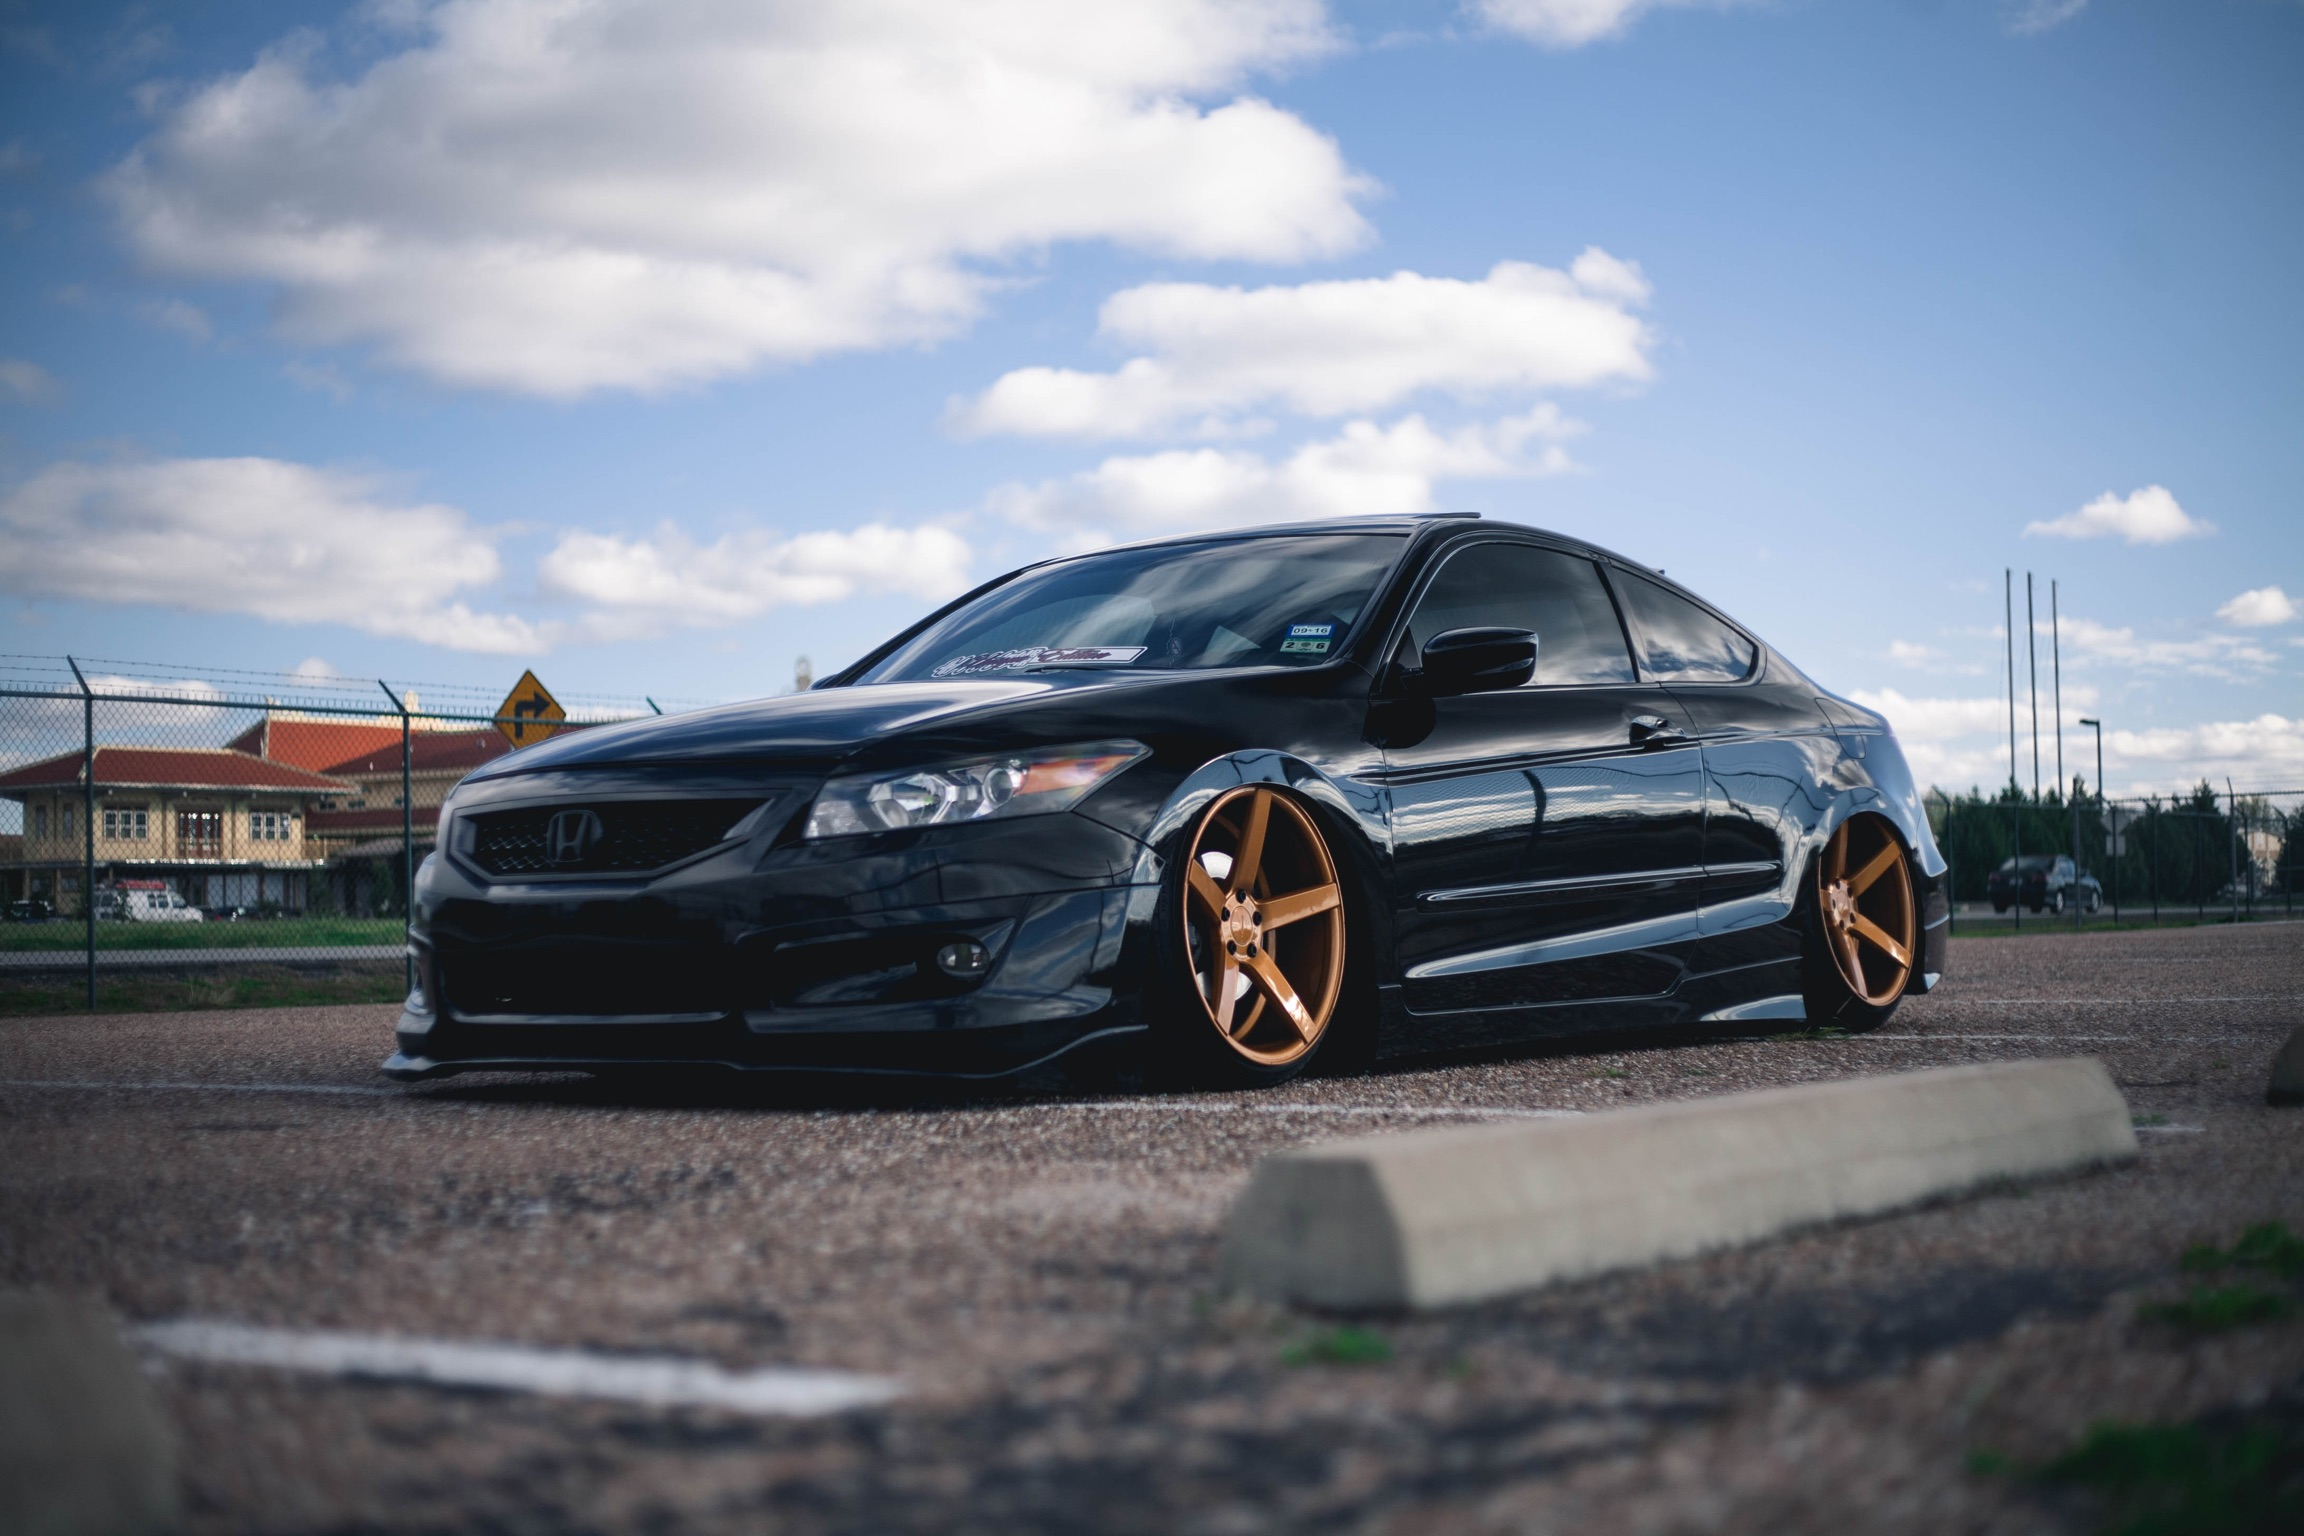 2009 Honda Accord Coupe Lip Kit Car Reviews 2018 1986 Stanced William Cruz S Ex L V6 Our8thgens